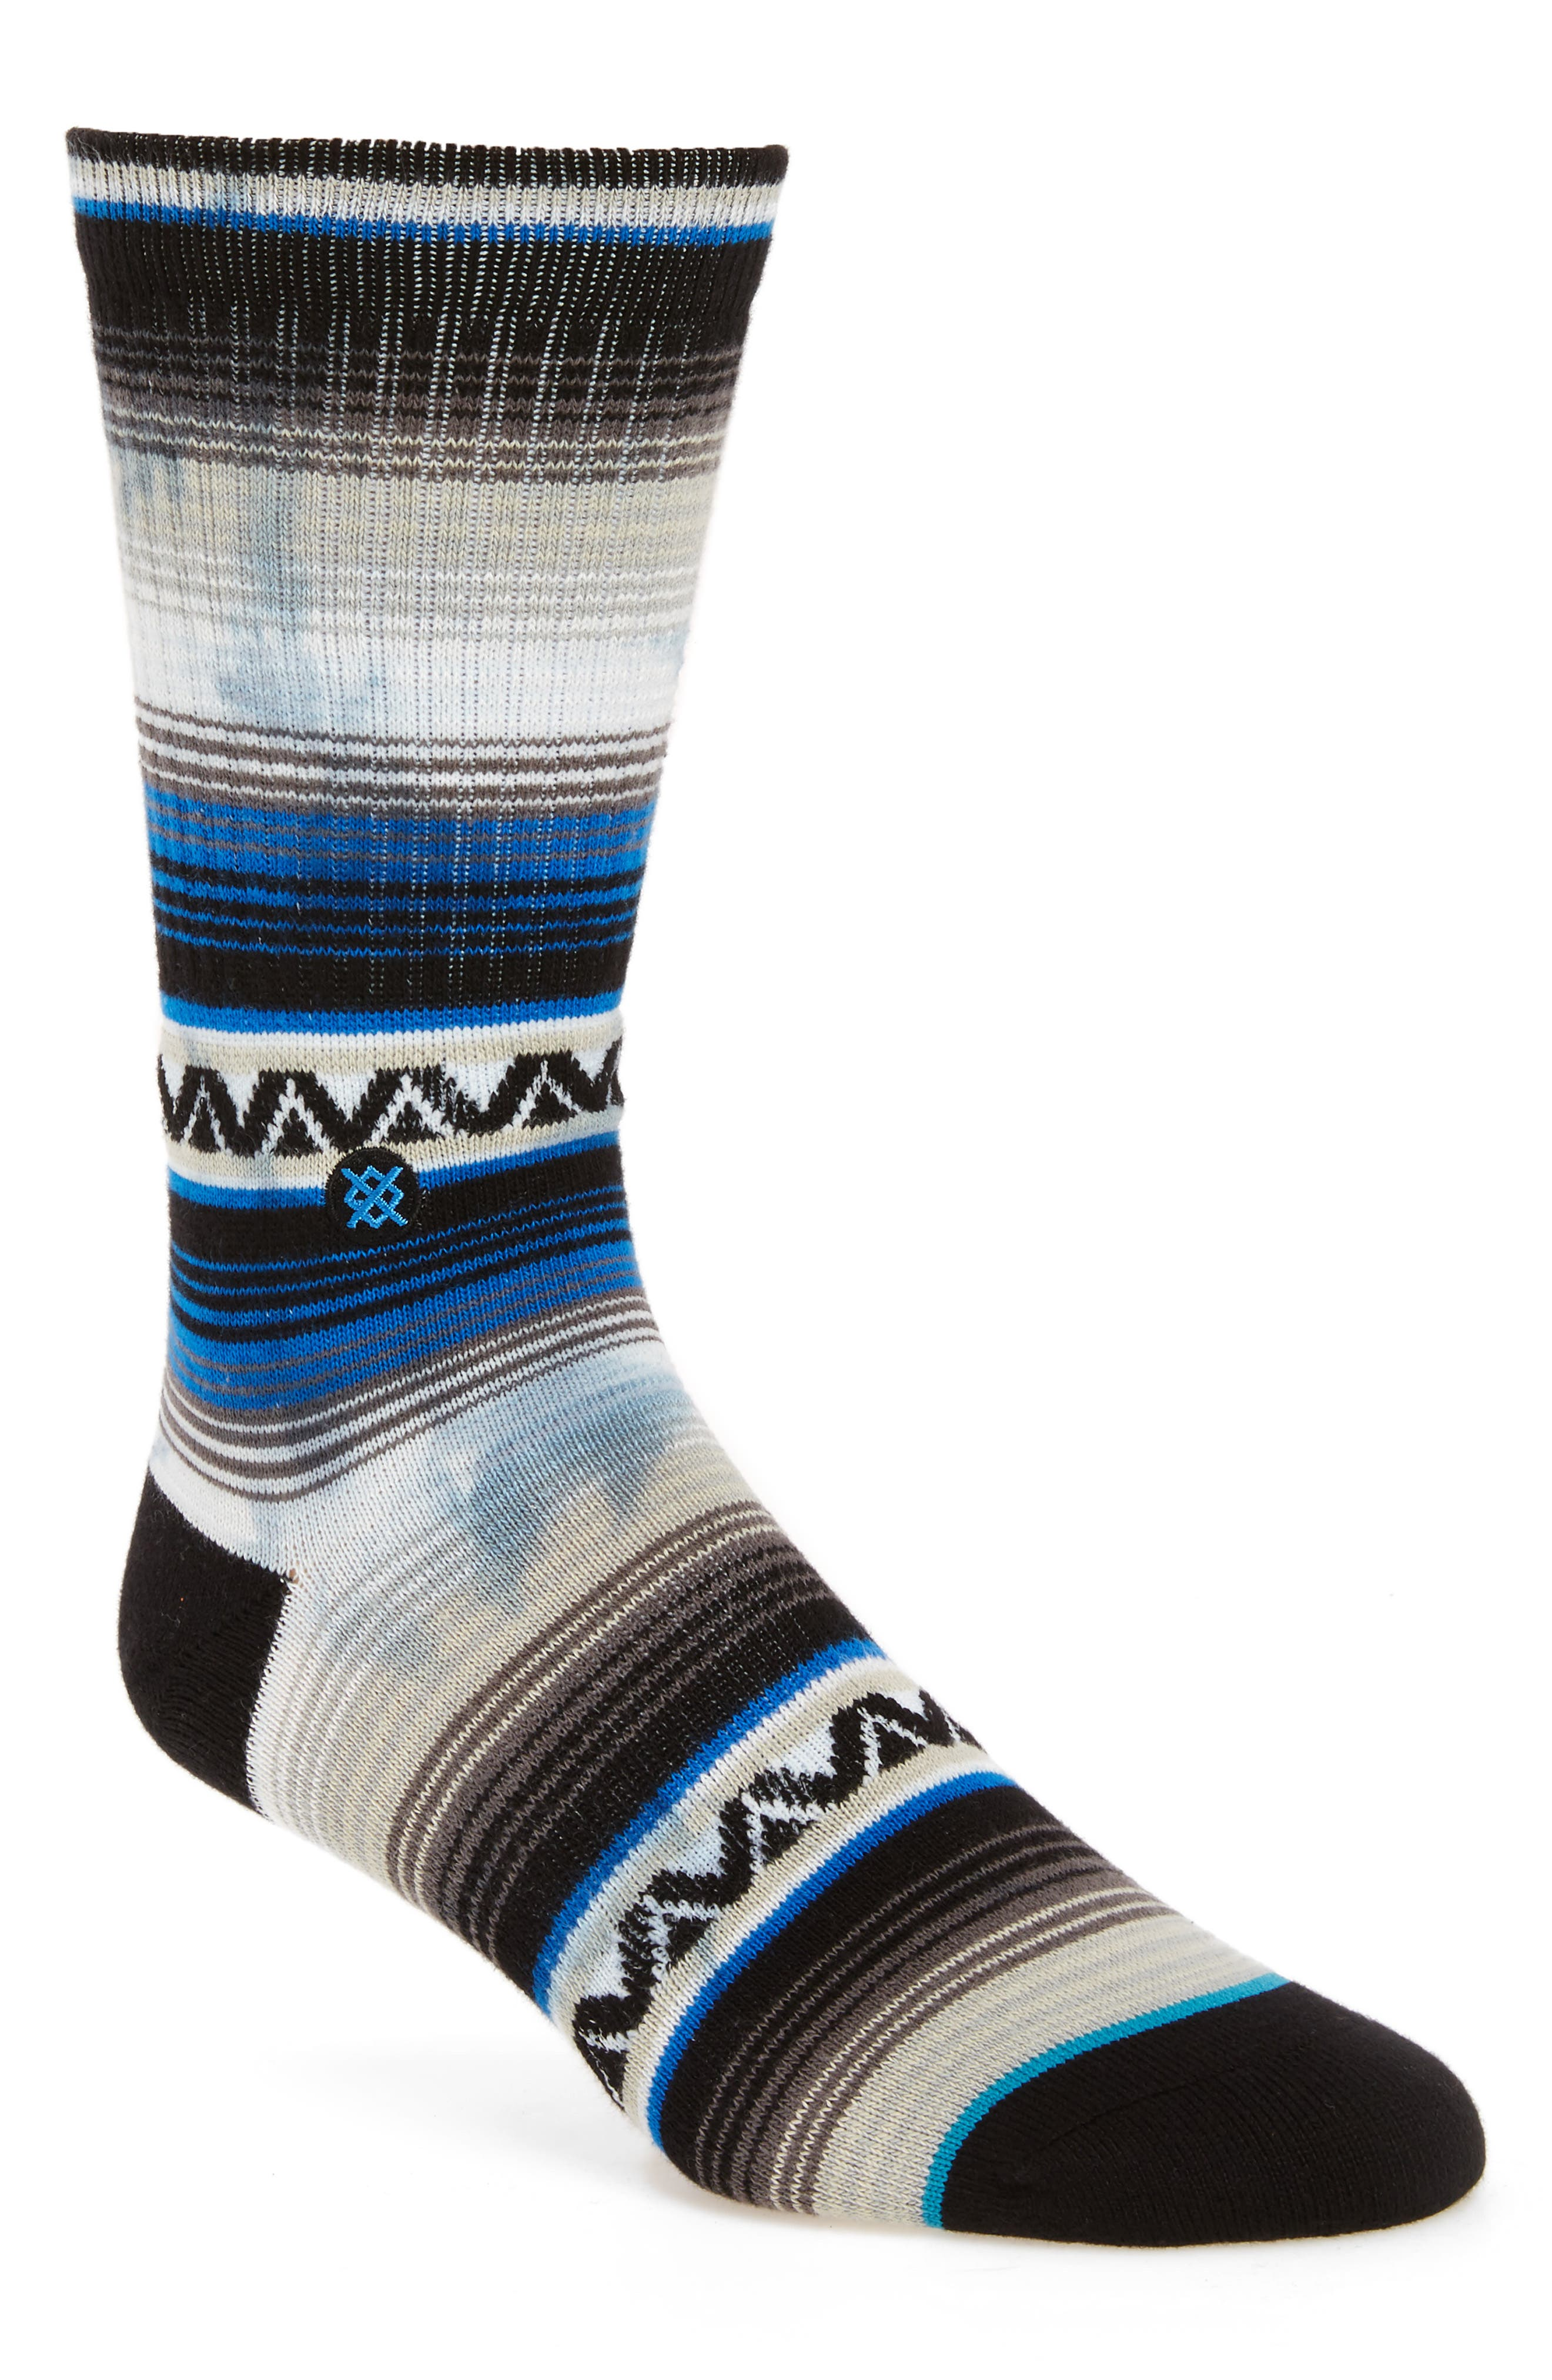 Main Image - Stance Mexi Crew Socks